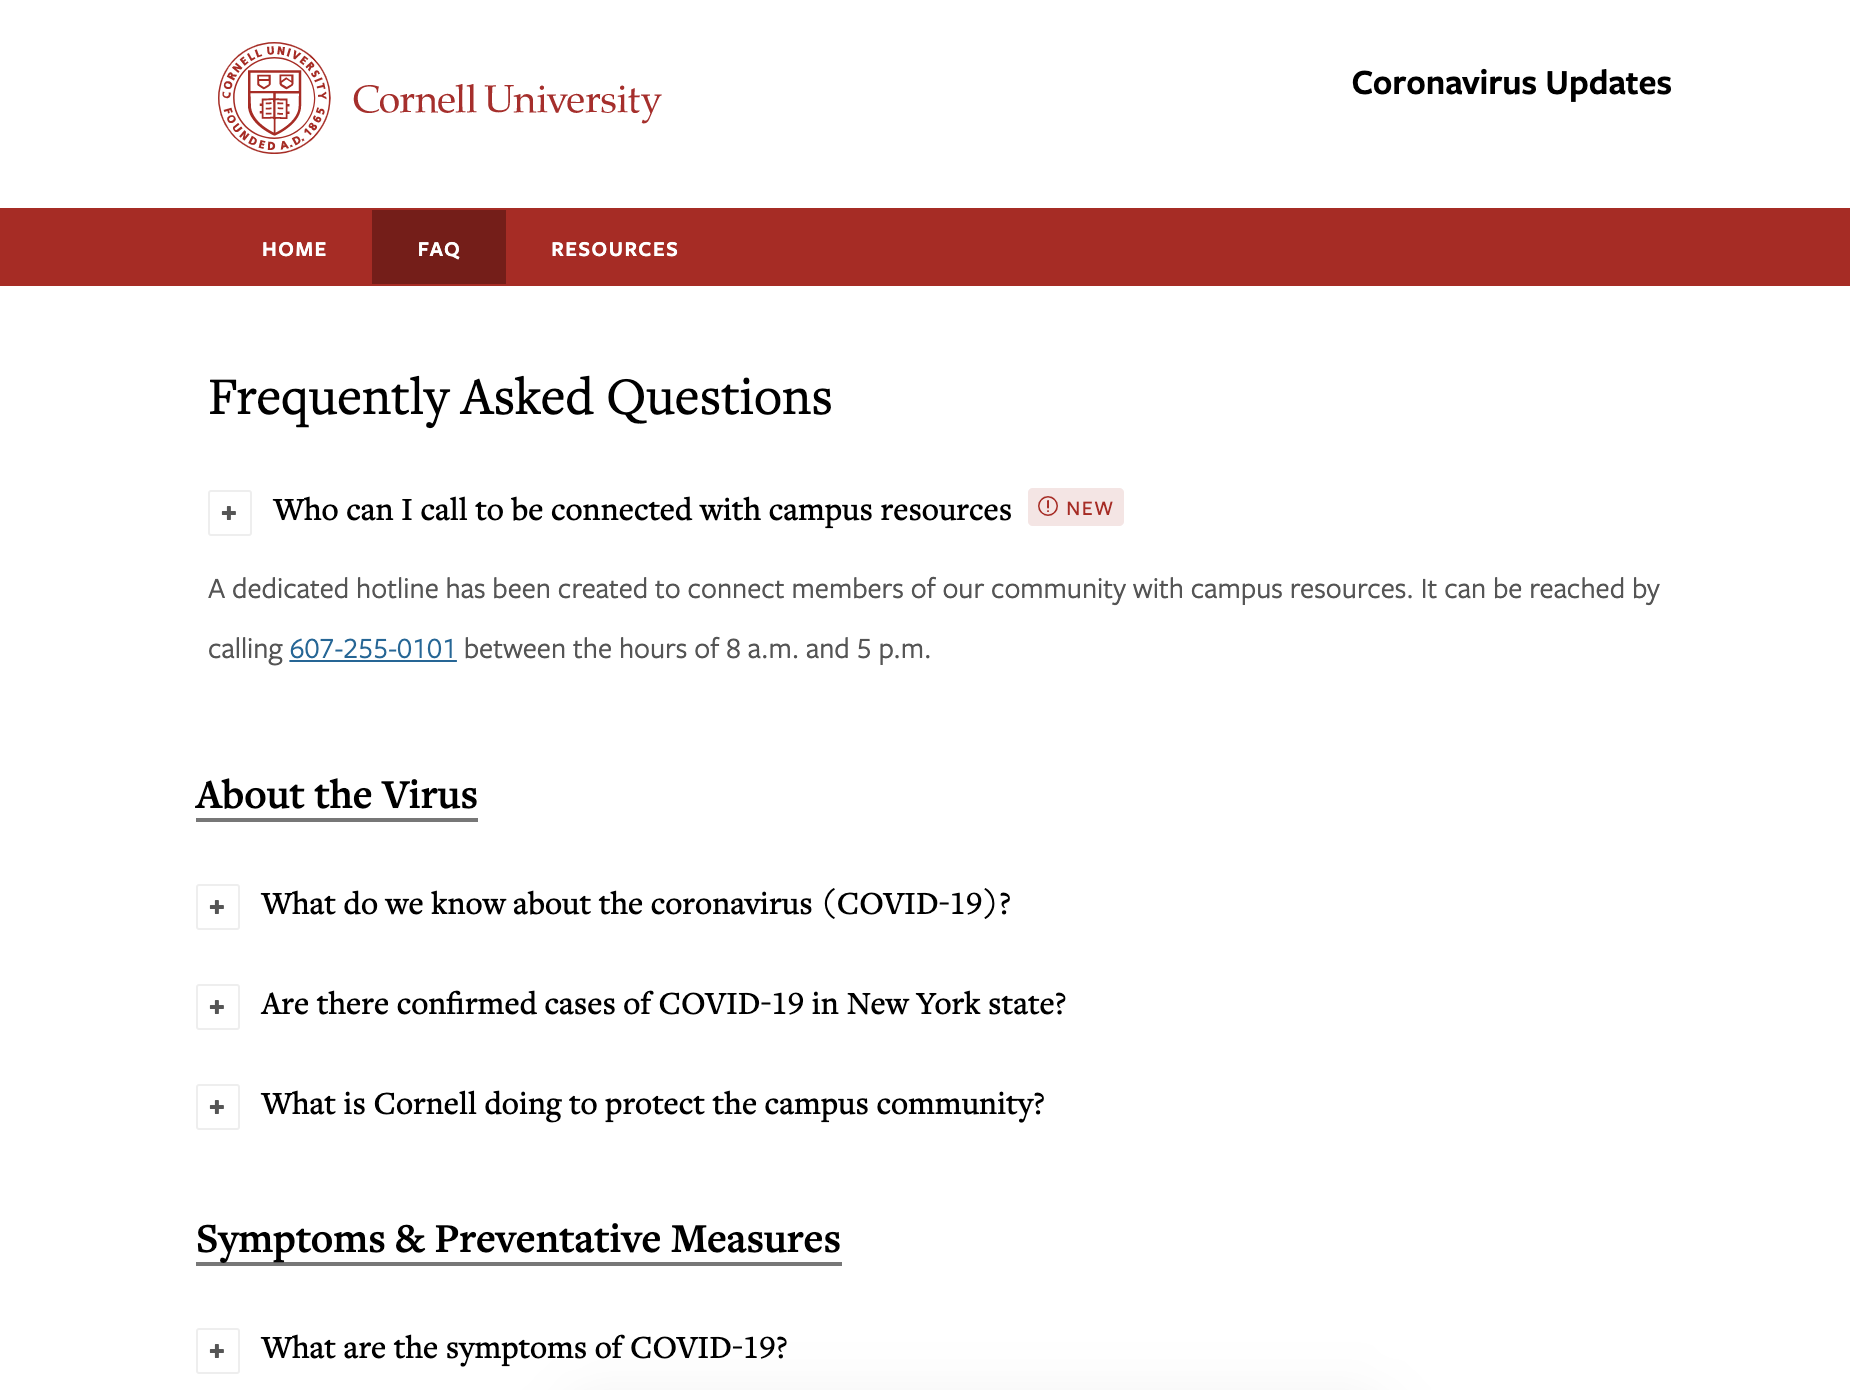 A screenshot from the Cornell University website showing their FAQ page about the coronavirus.